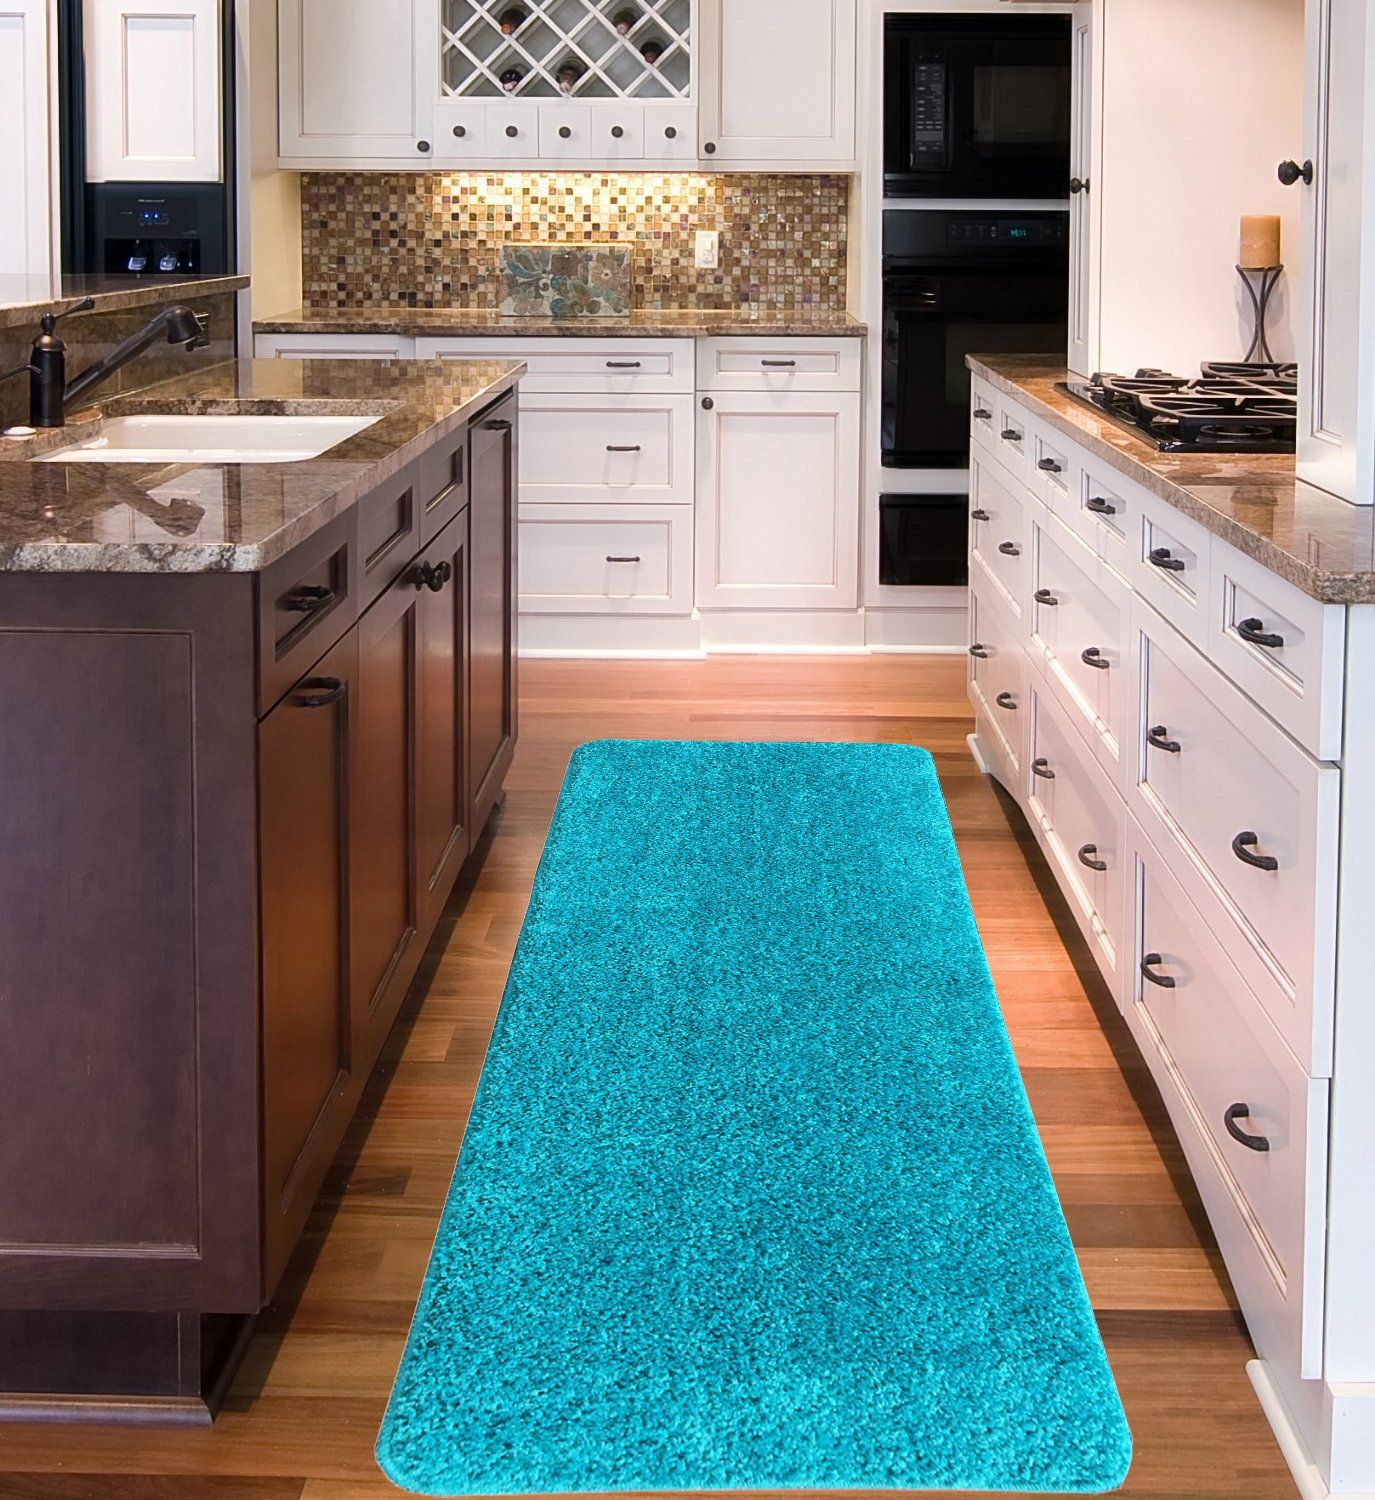 Kitchen Rubber Backed Carpet Runners By The Foot Non Skid Rugs For